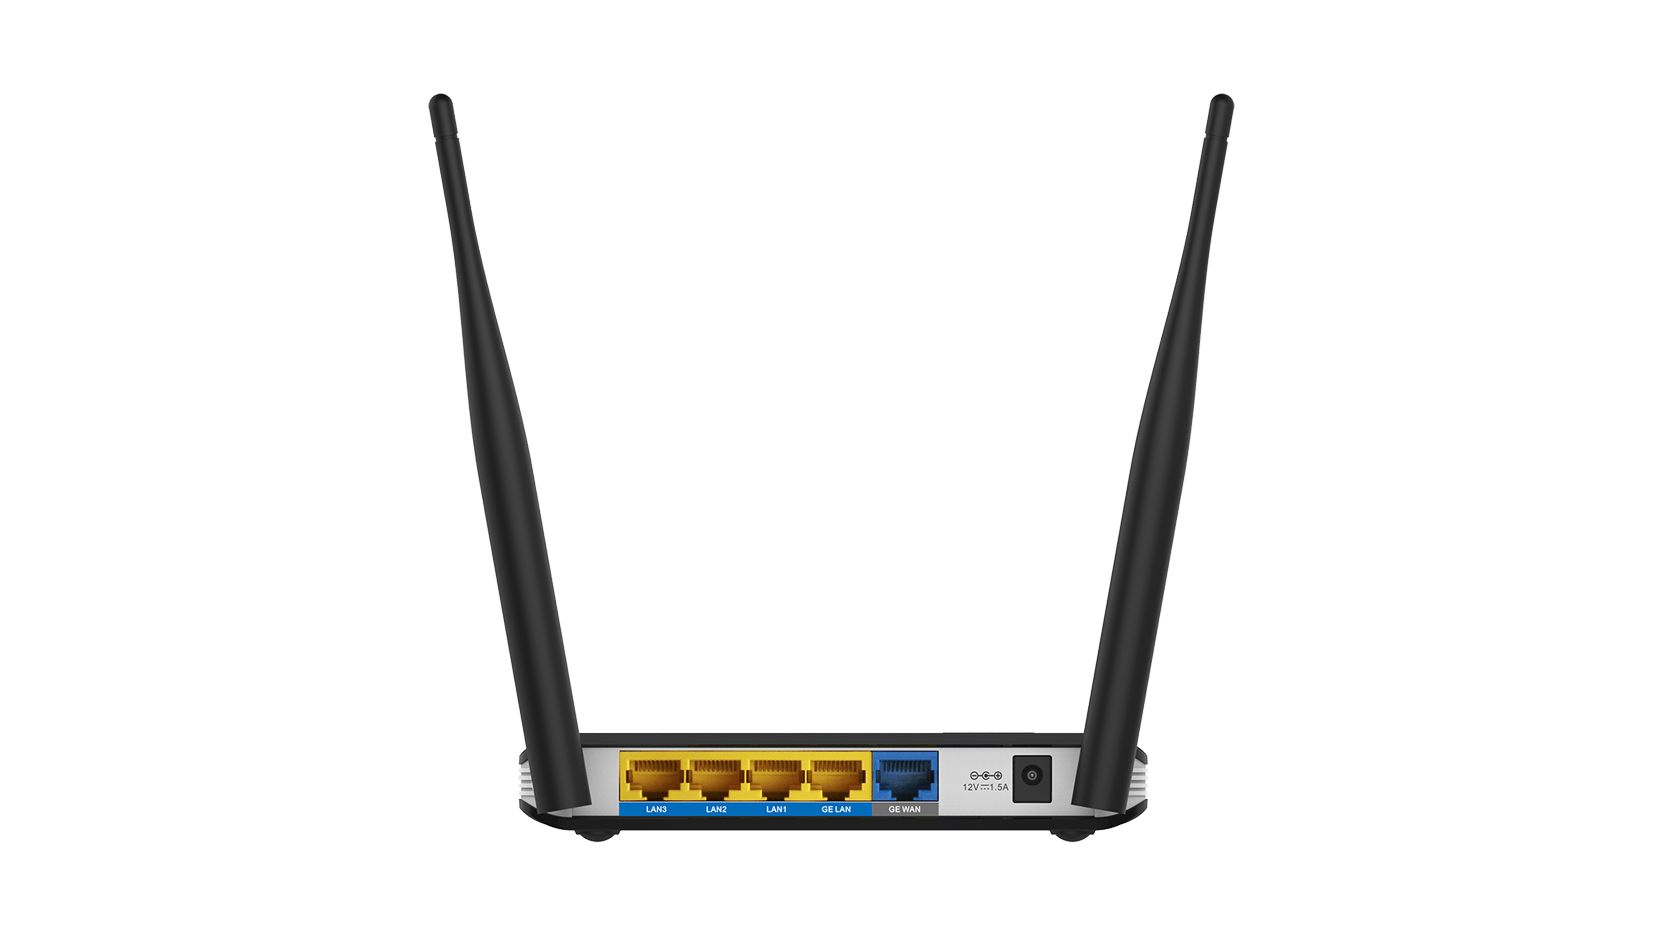 Dwr 118 Wireless Ac750 Dual Band Multi Wan Router